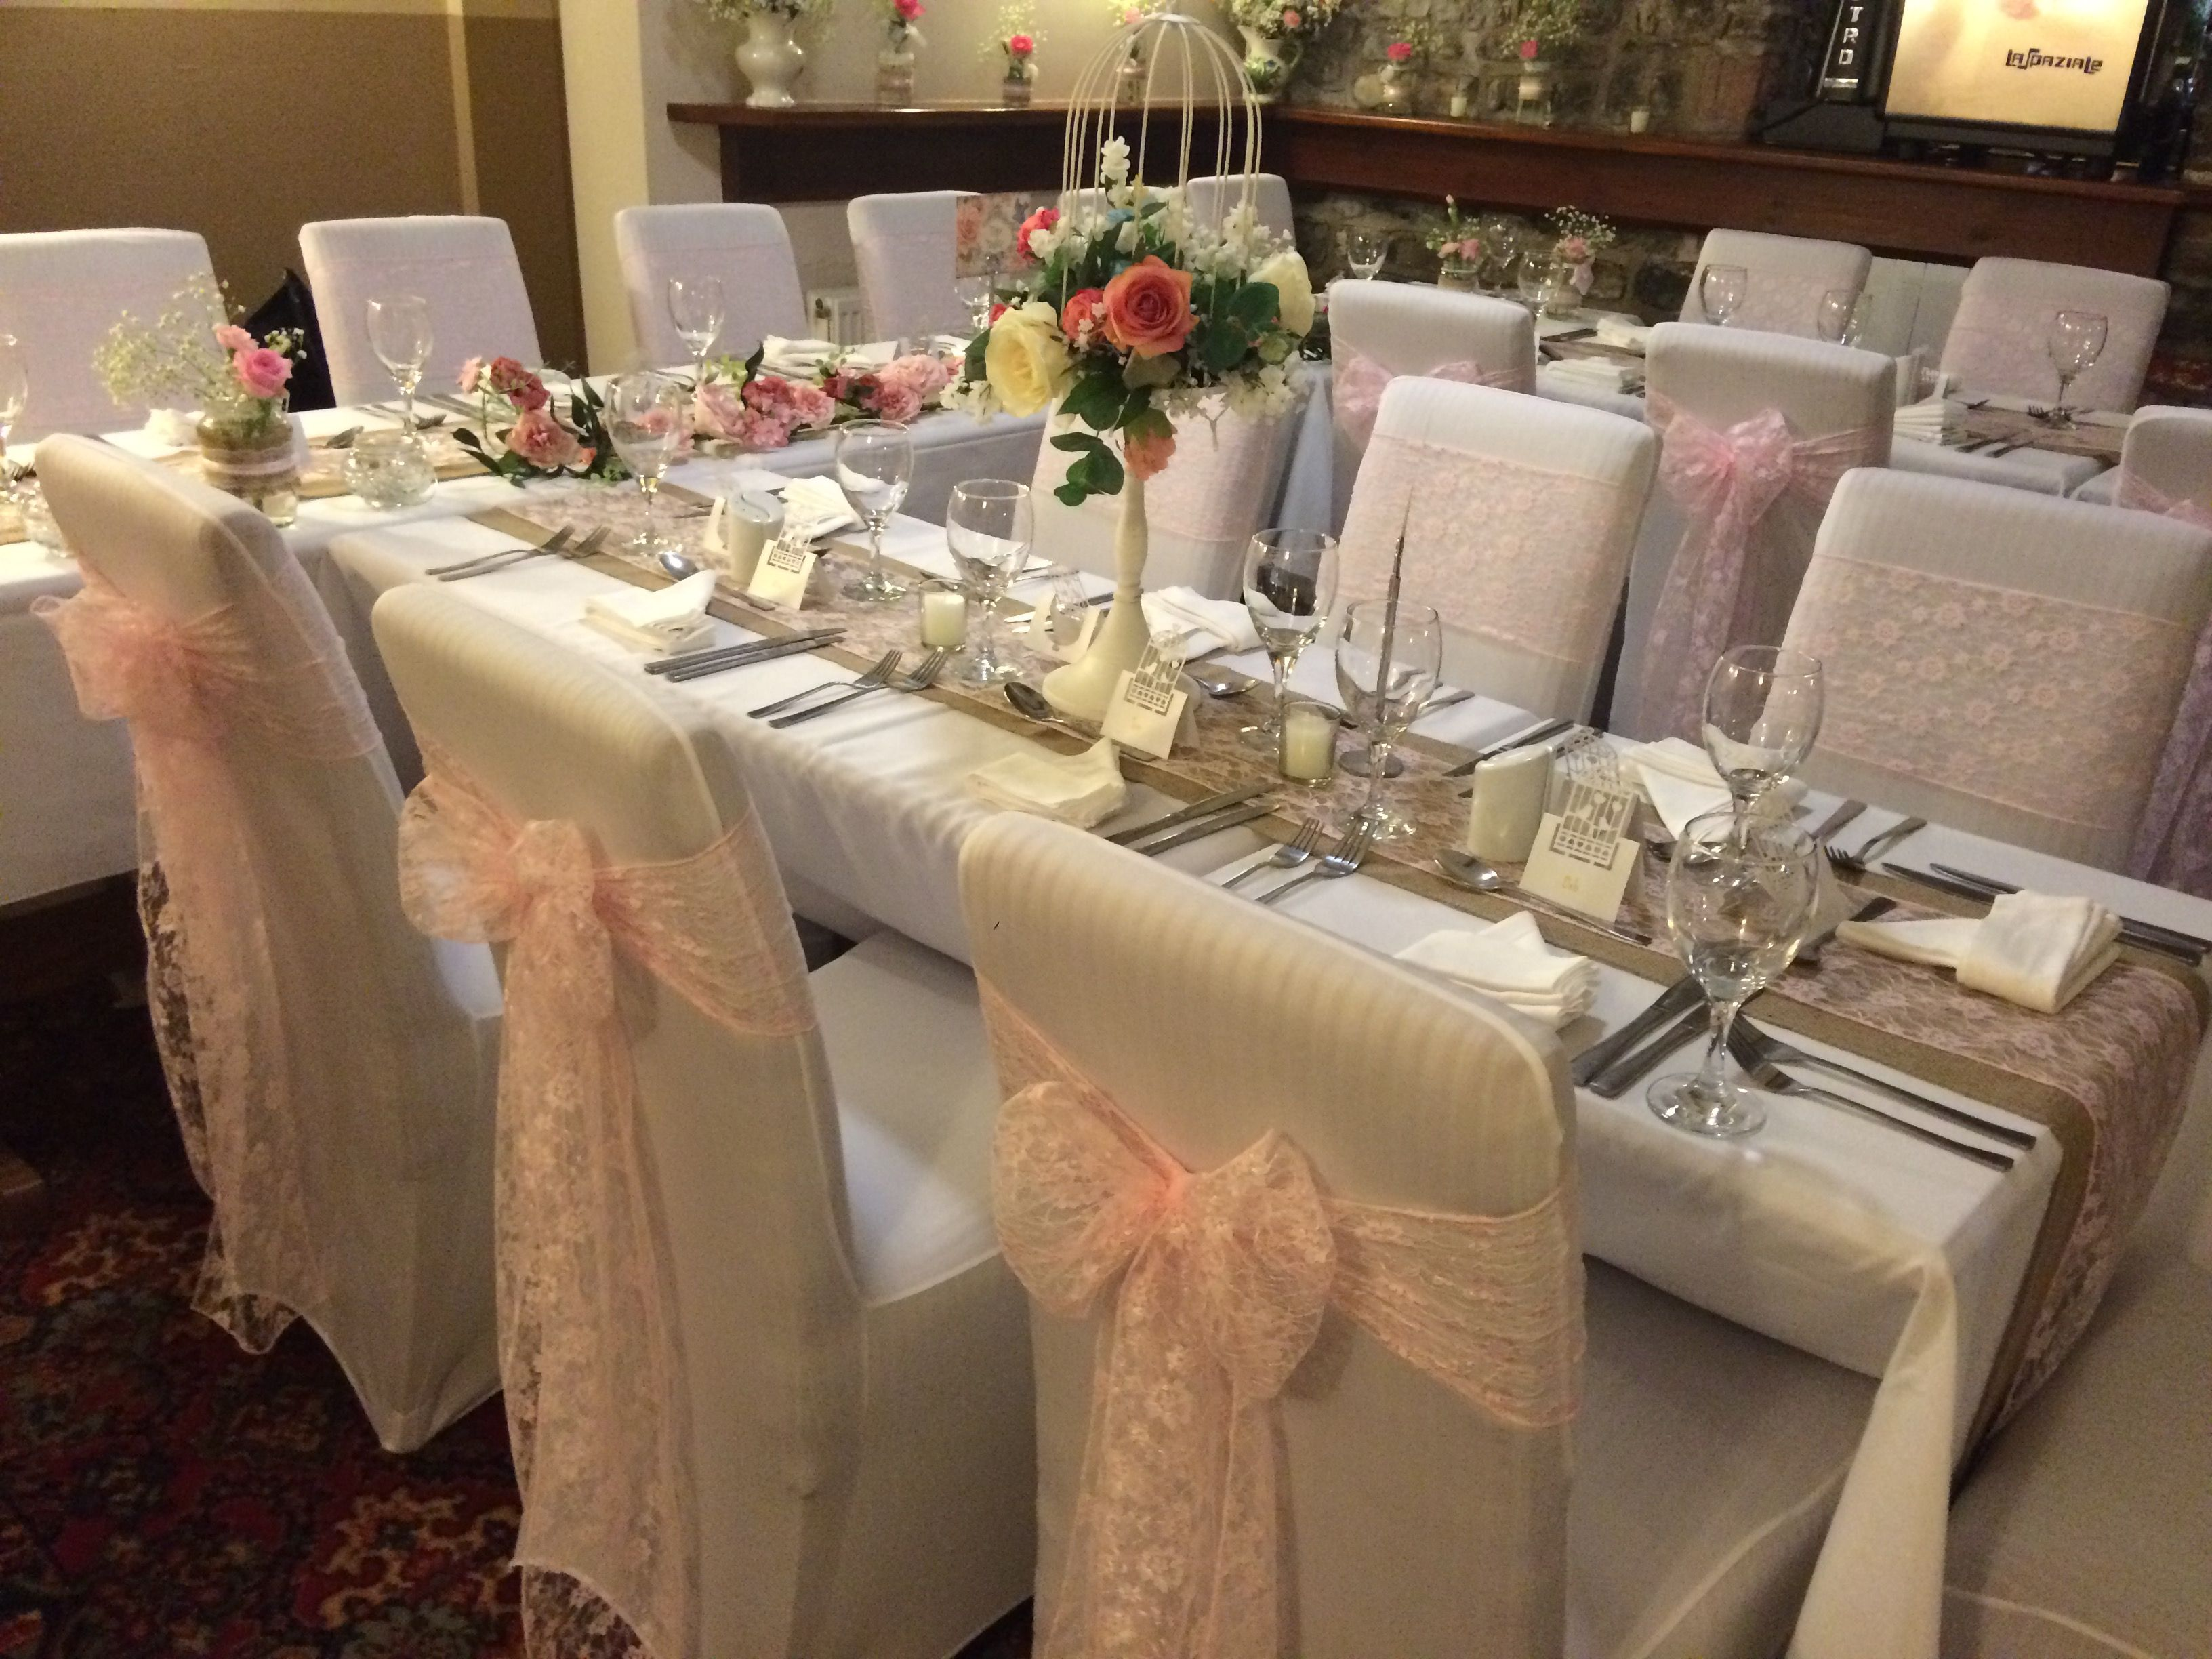 Chair Cover Hire South Wales Stand Test For Lower Body Strength White Covers And Pink Lace Sashes Hessian Table